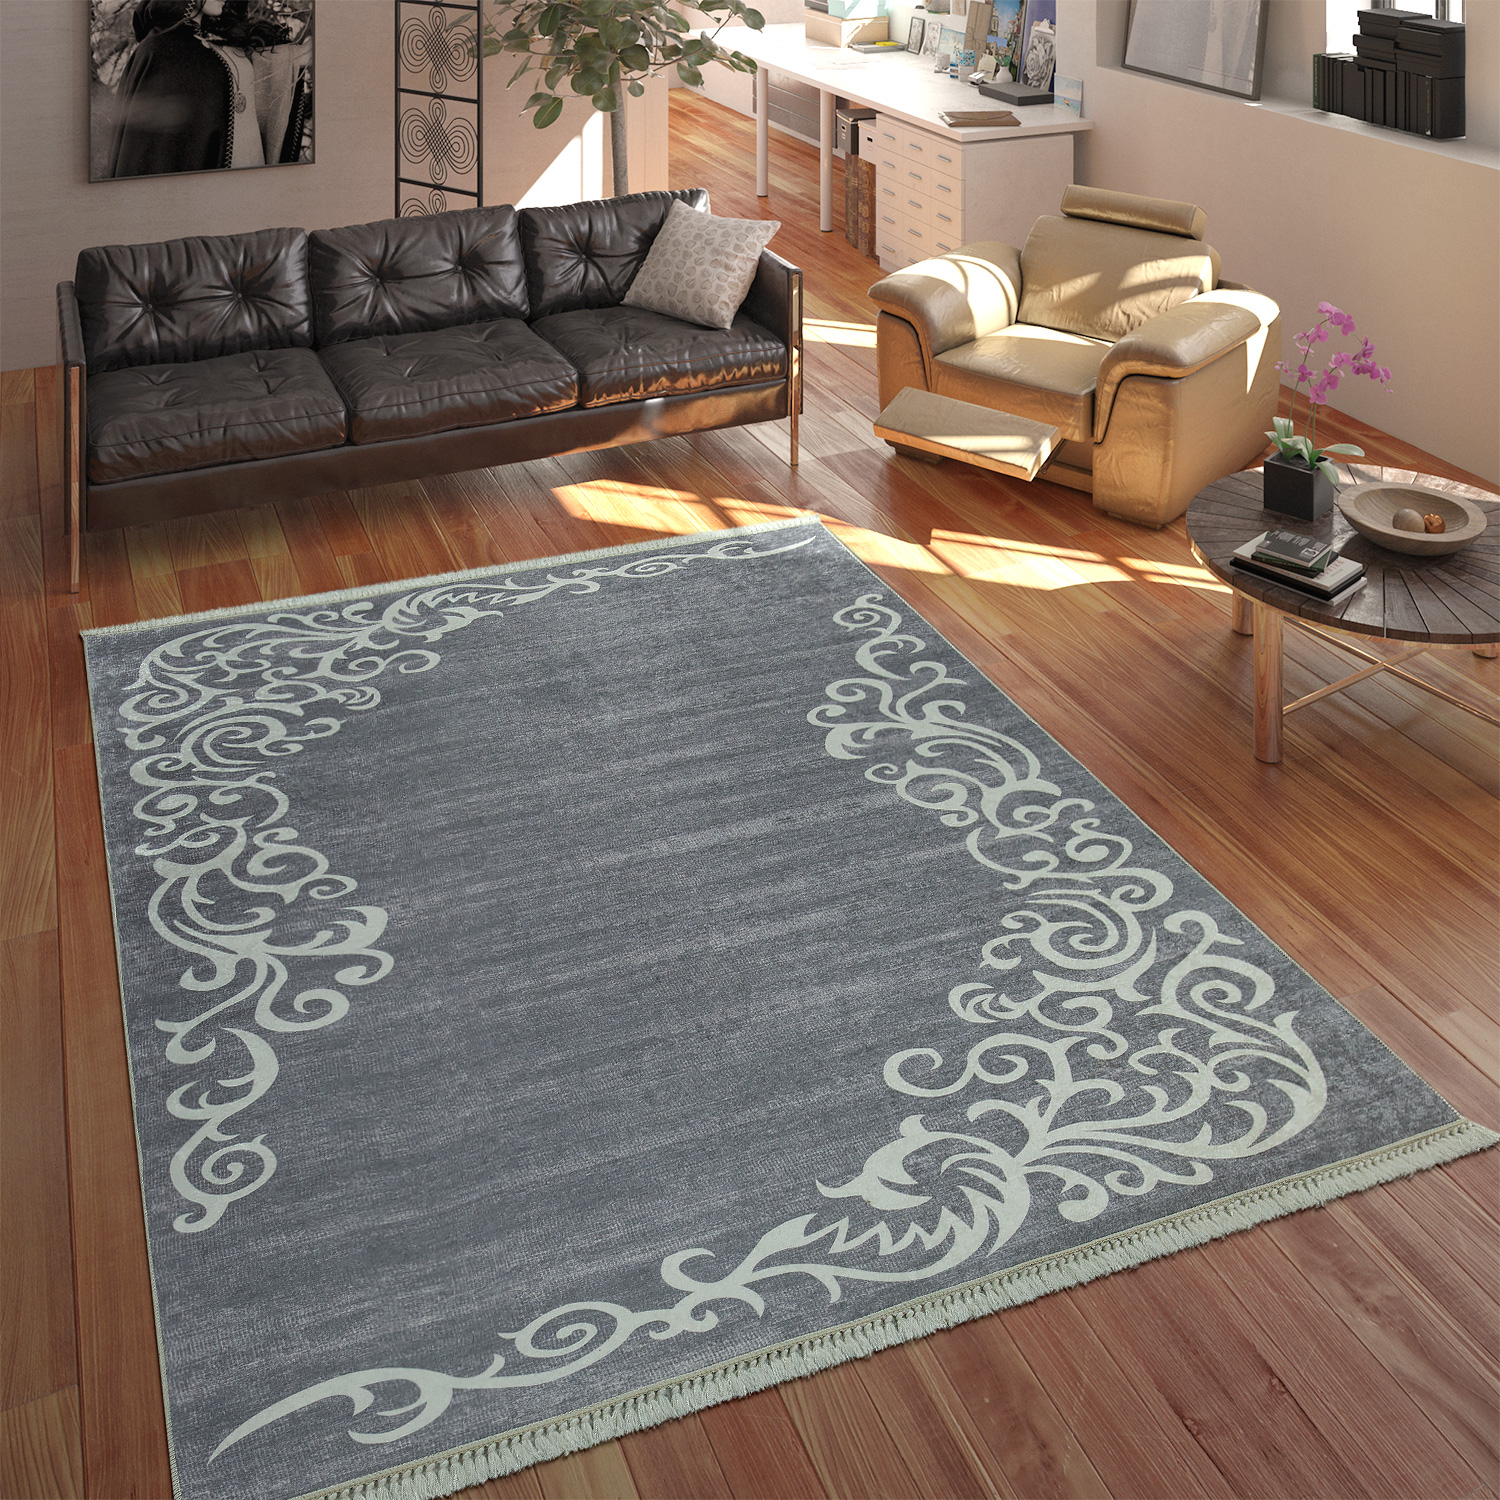 Modern Rug With Printed Tendril Pattern Trendy Design Grey White